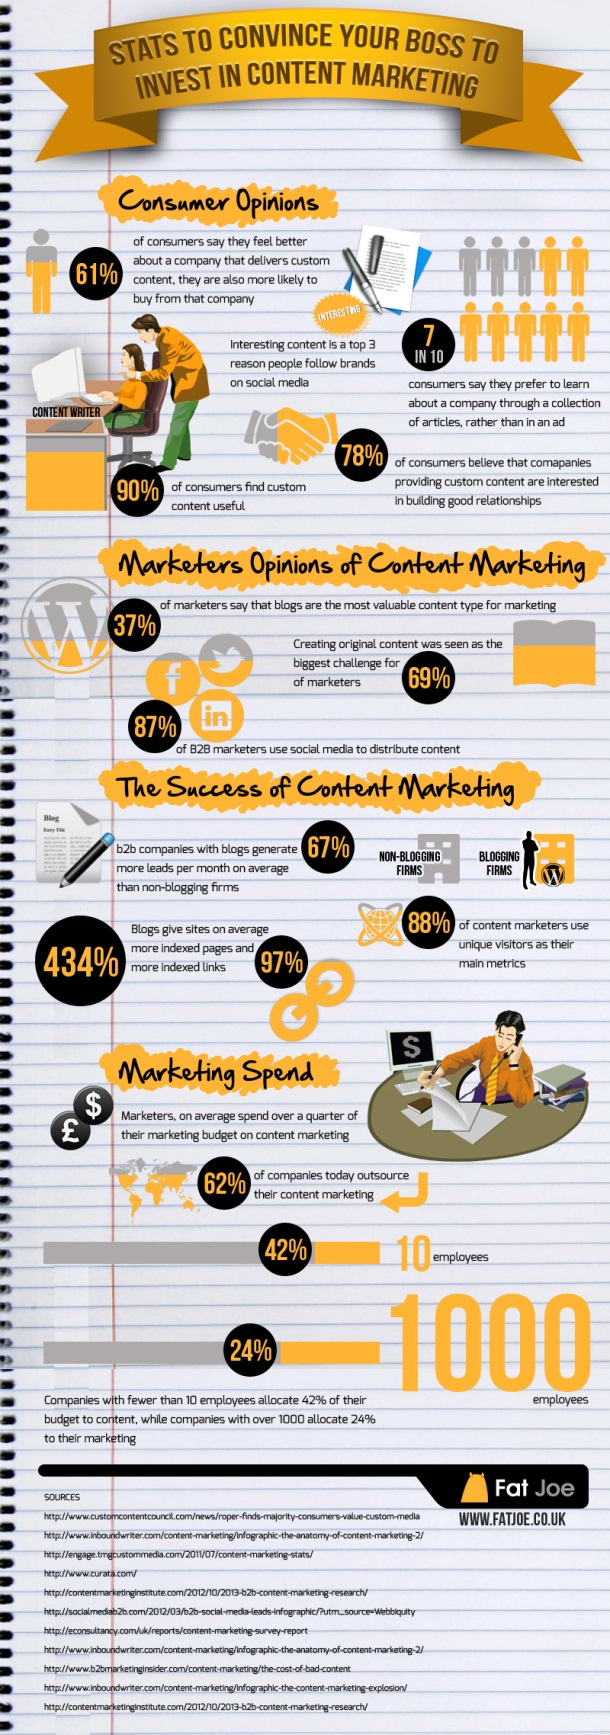 Social media and content marketing info